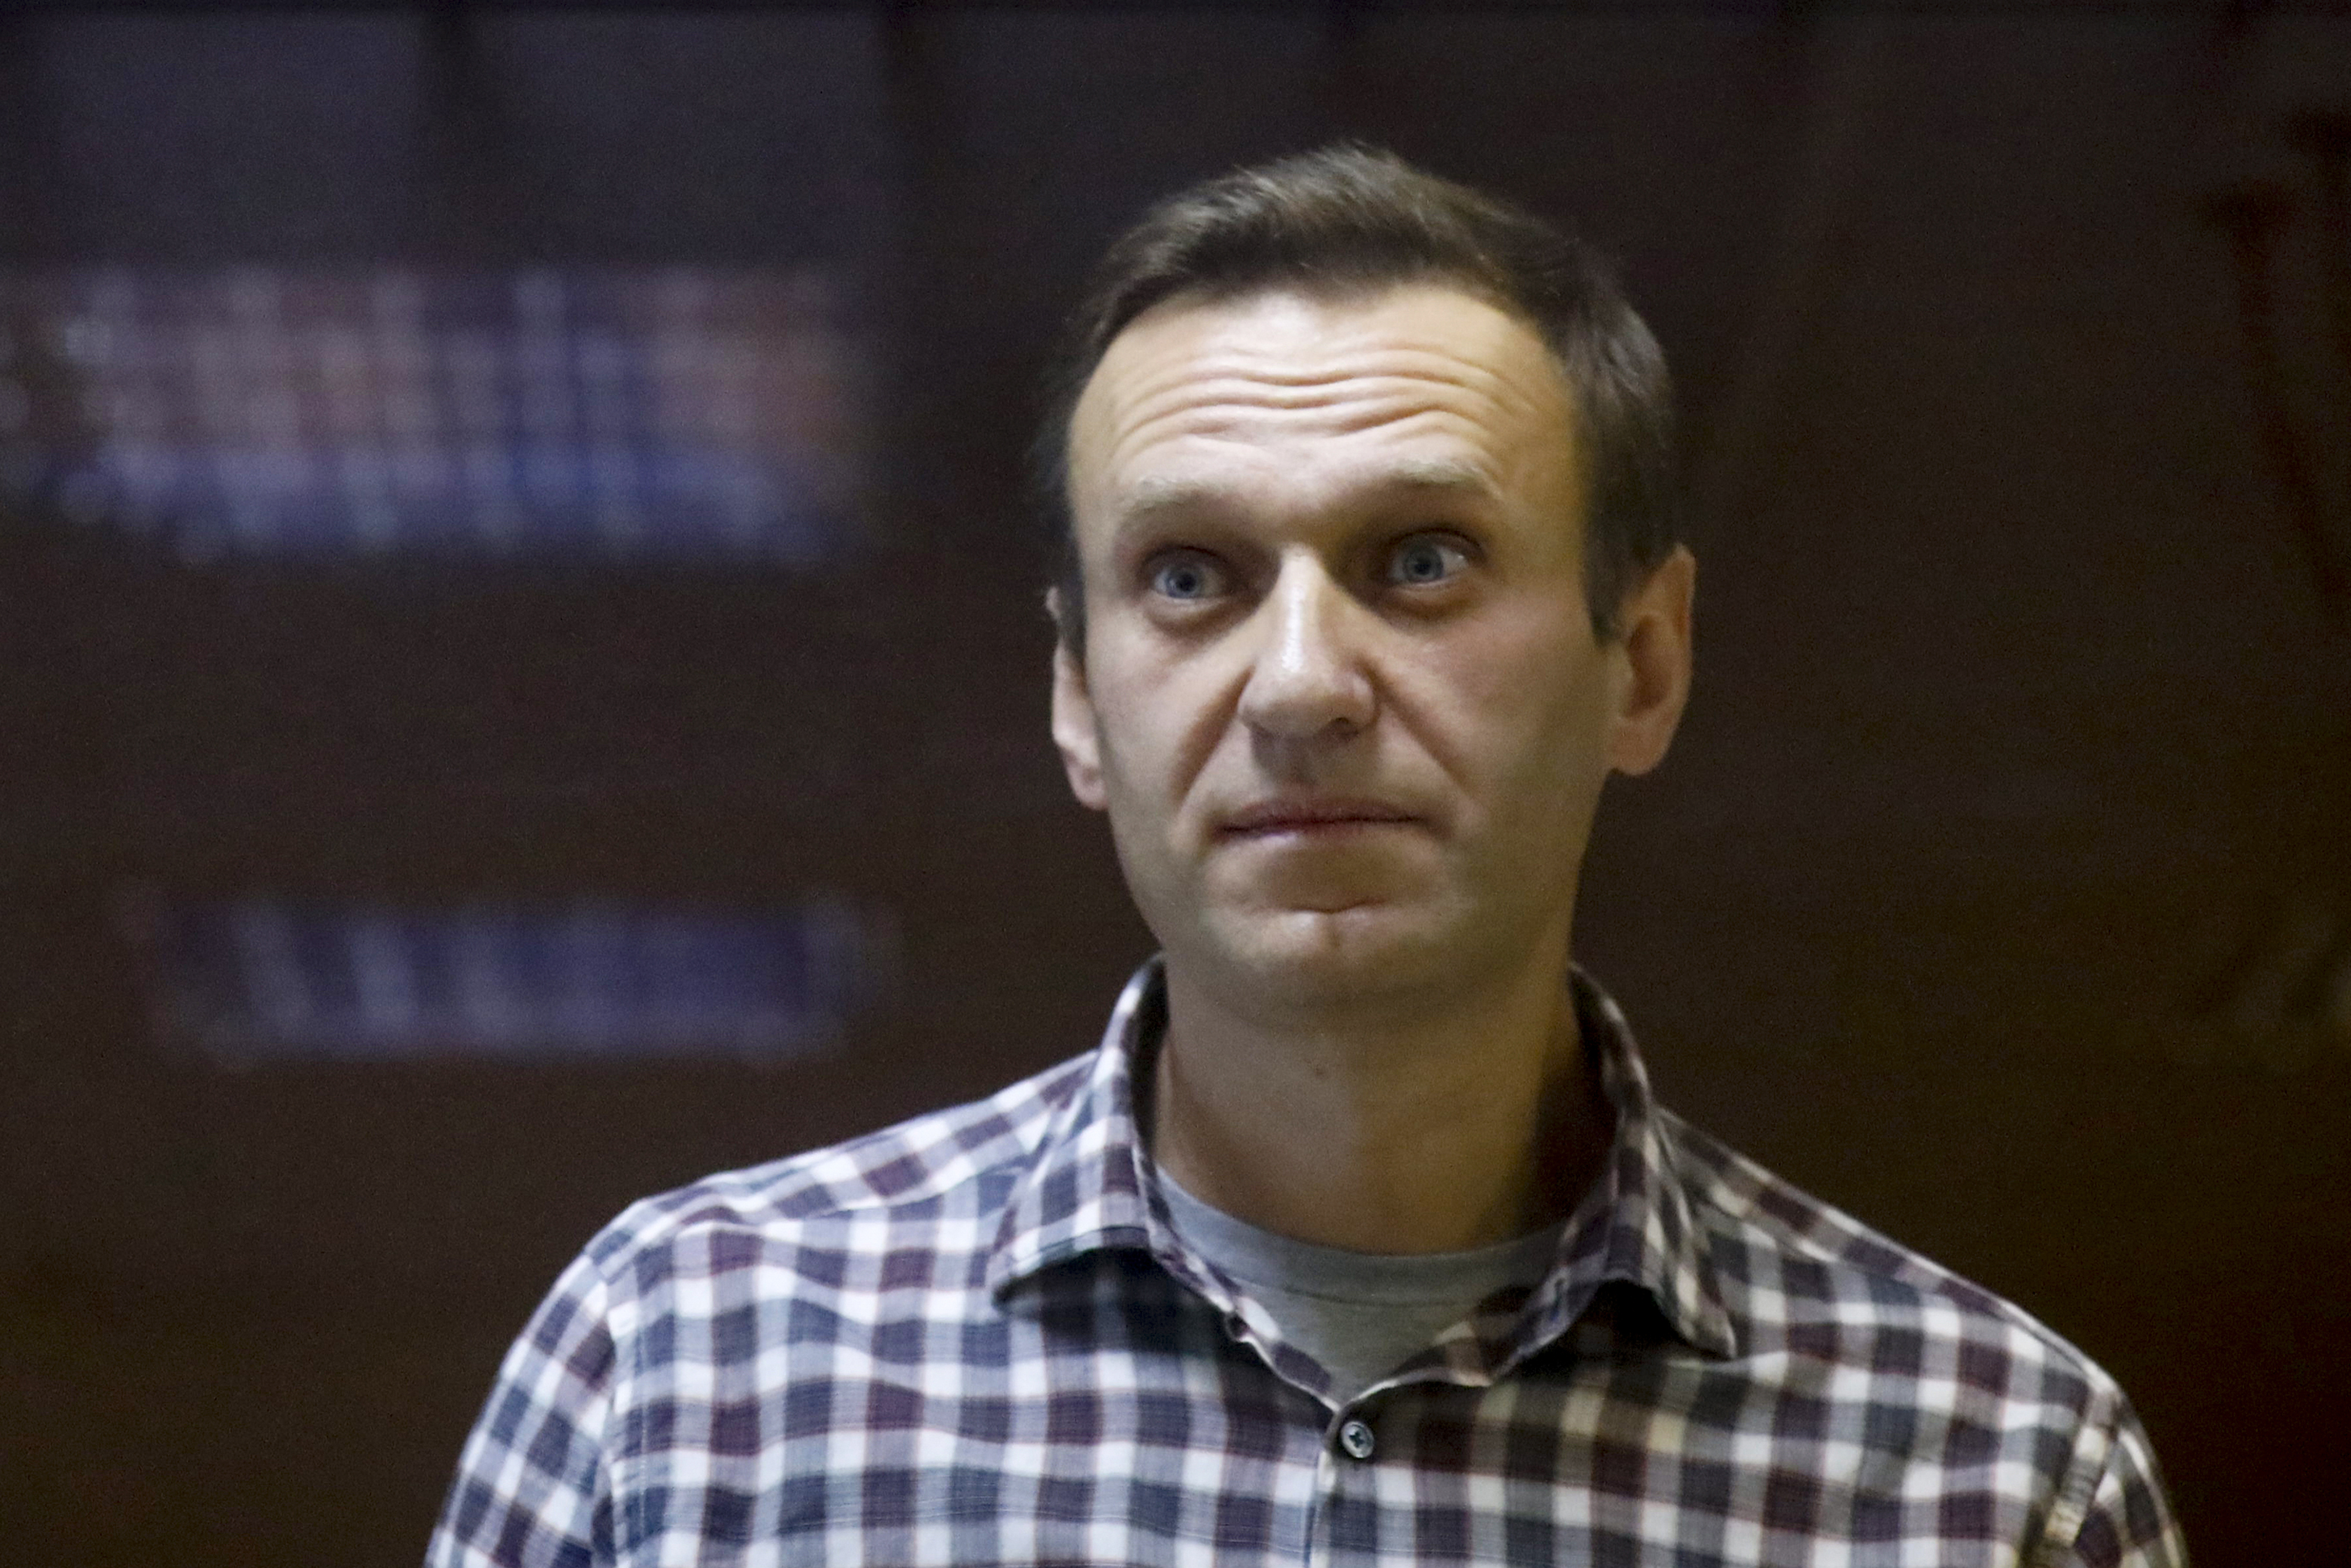 Russian opposition leader Alexei Navalny stands in a cage in the Babuskinsky District Court in Moscow, Russia, on Feb. 20, 2021 .